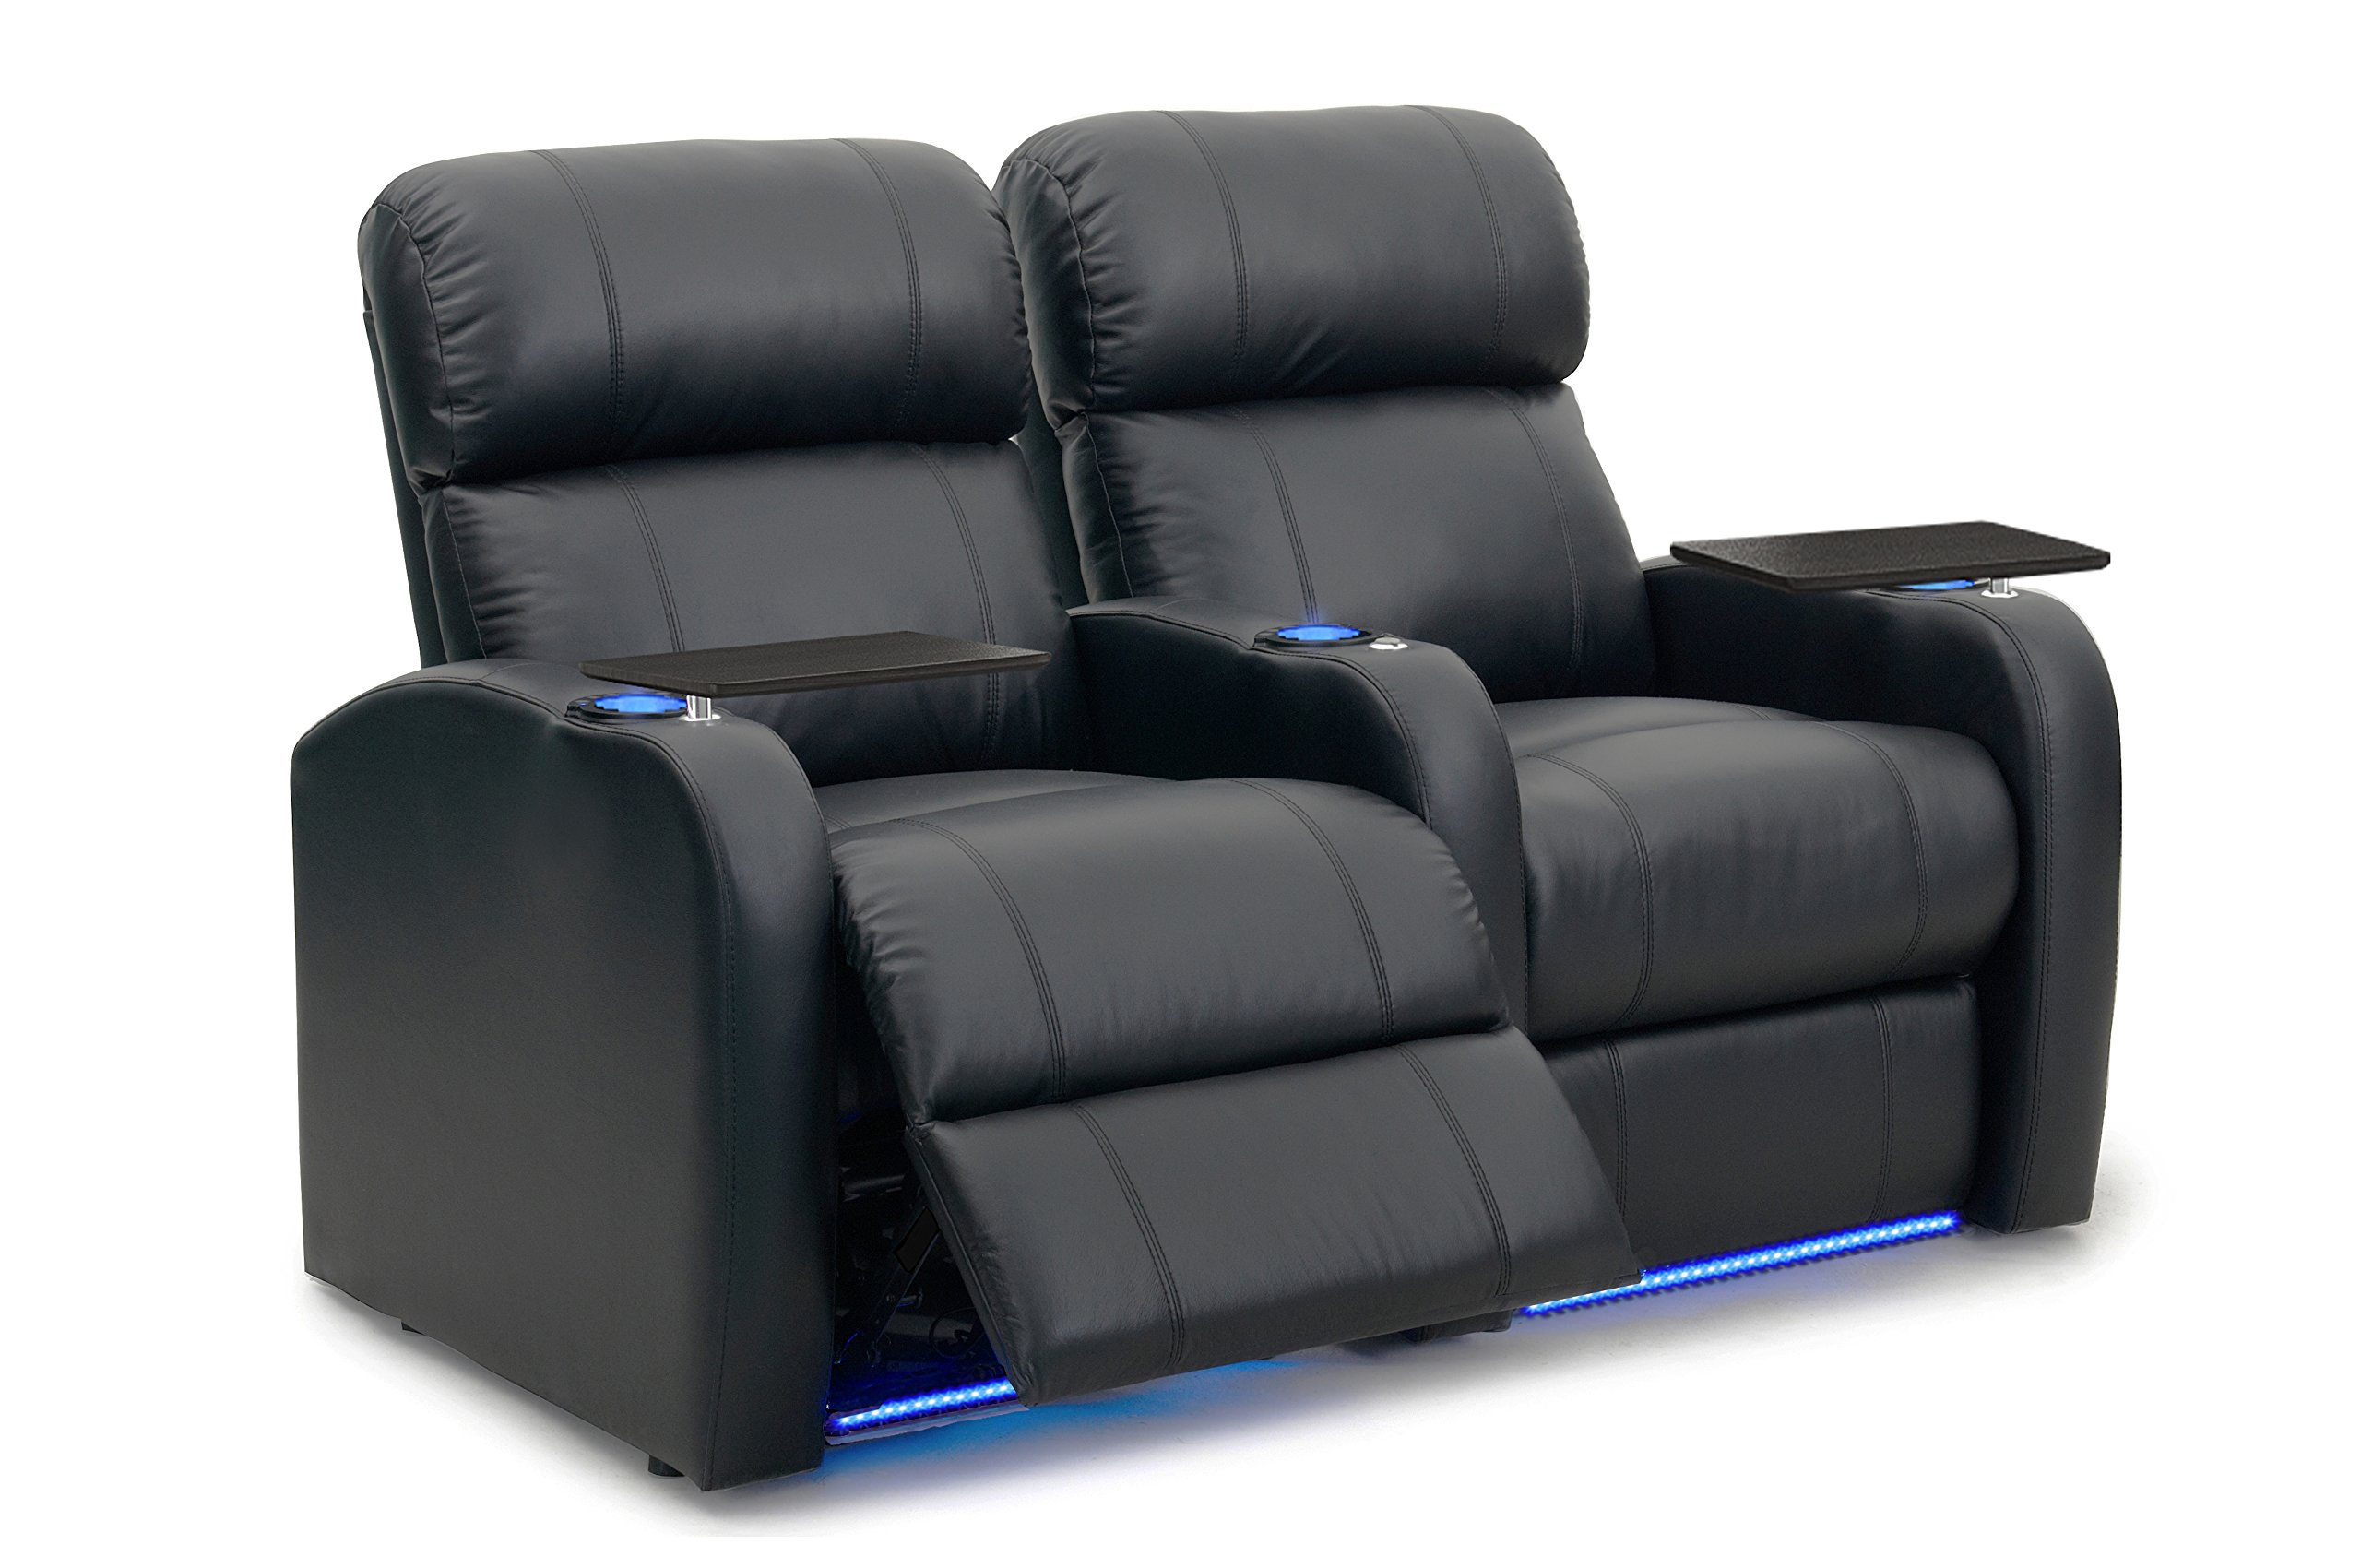 Diesel XS950 Theater Chairs - Octane Seating - Black Premium Leather - Power Recline - Memory Foam - Accessory Dock - Straight Row 2 Seats